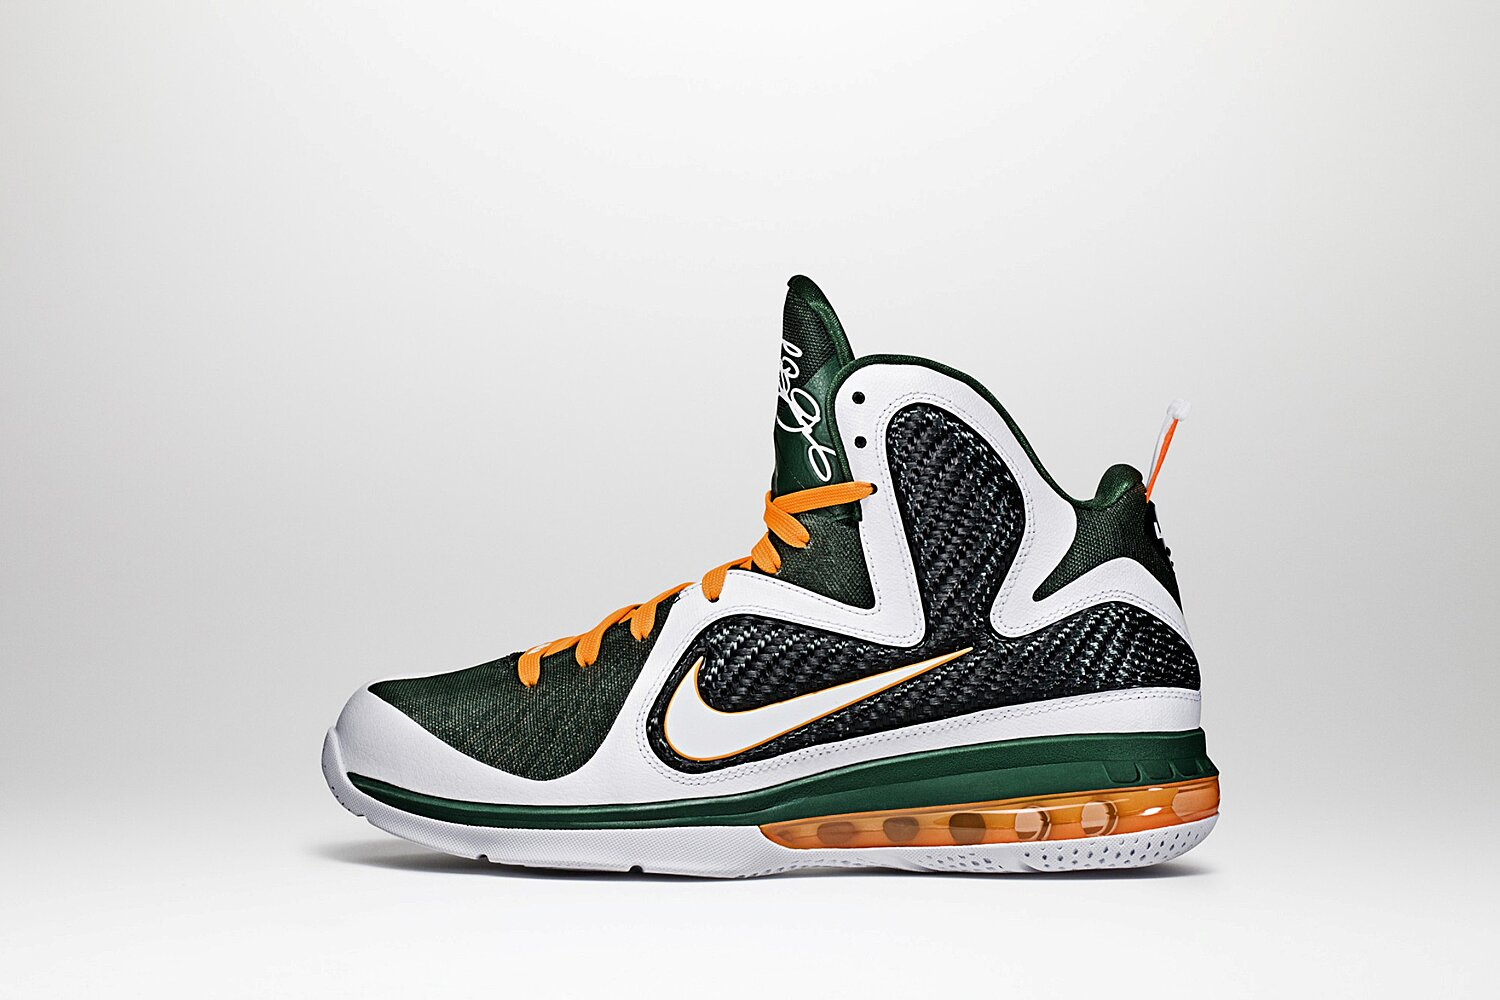 ec78674da2d LeBron James Signature Sneakers  Ranking the Best of the King